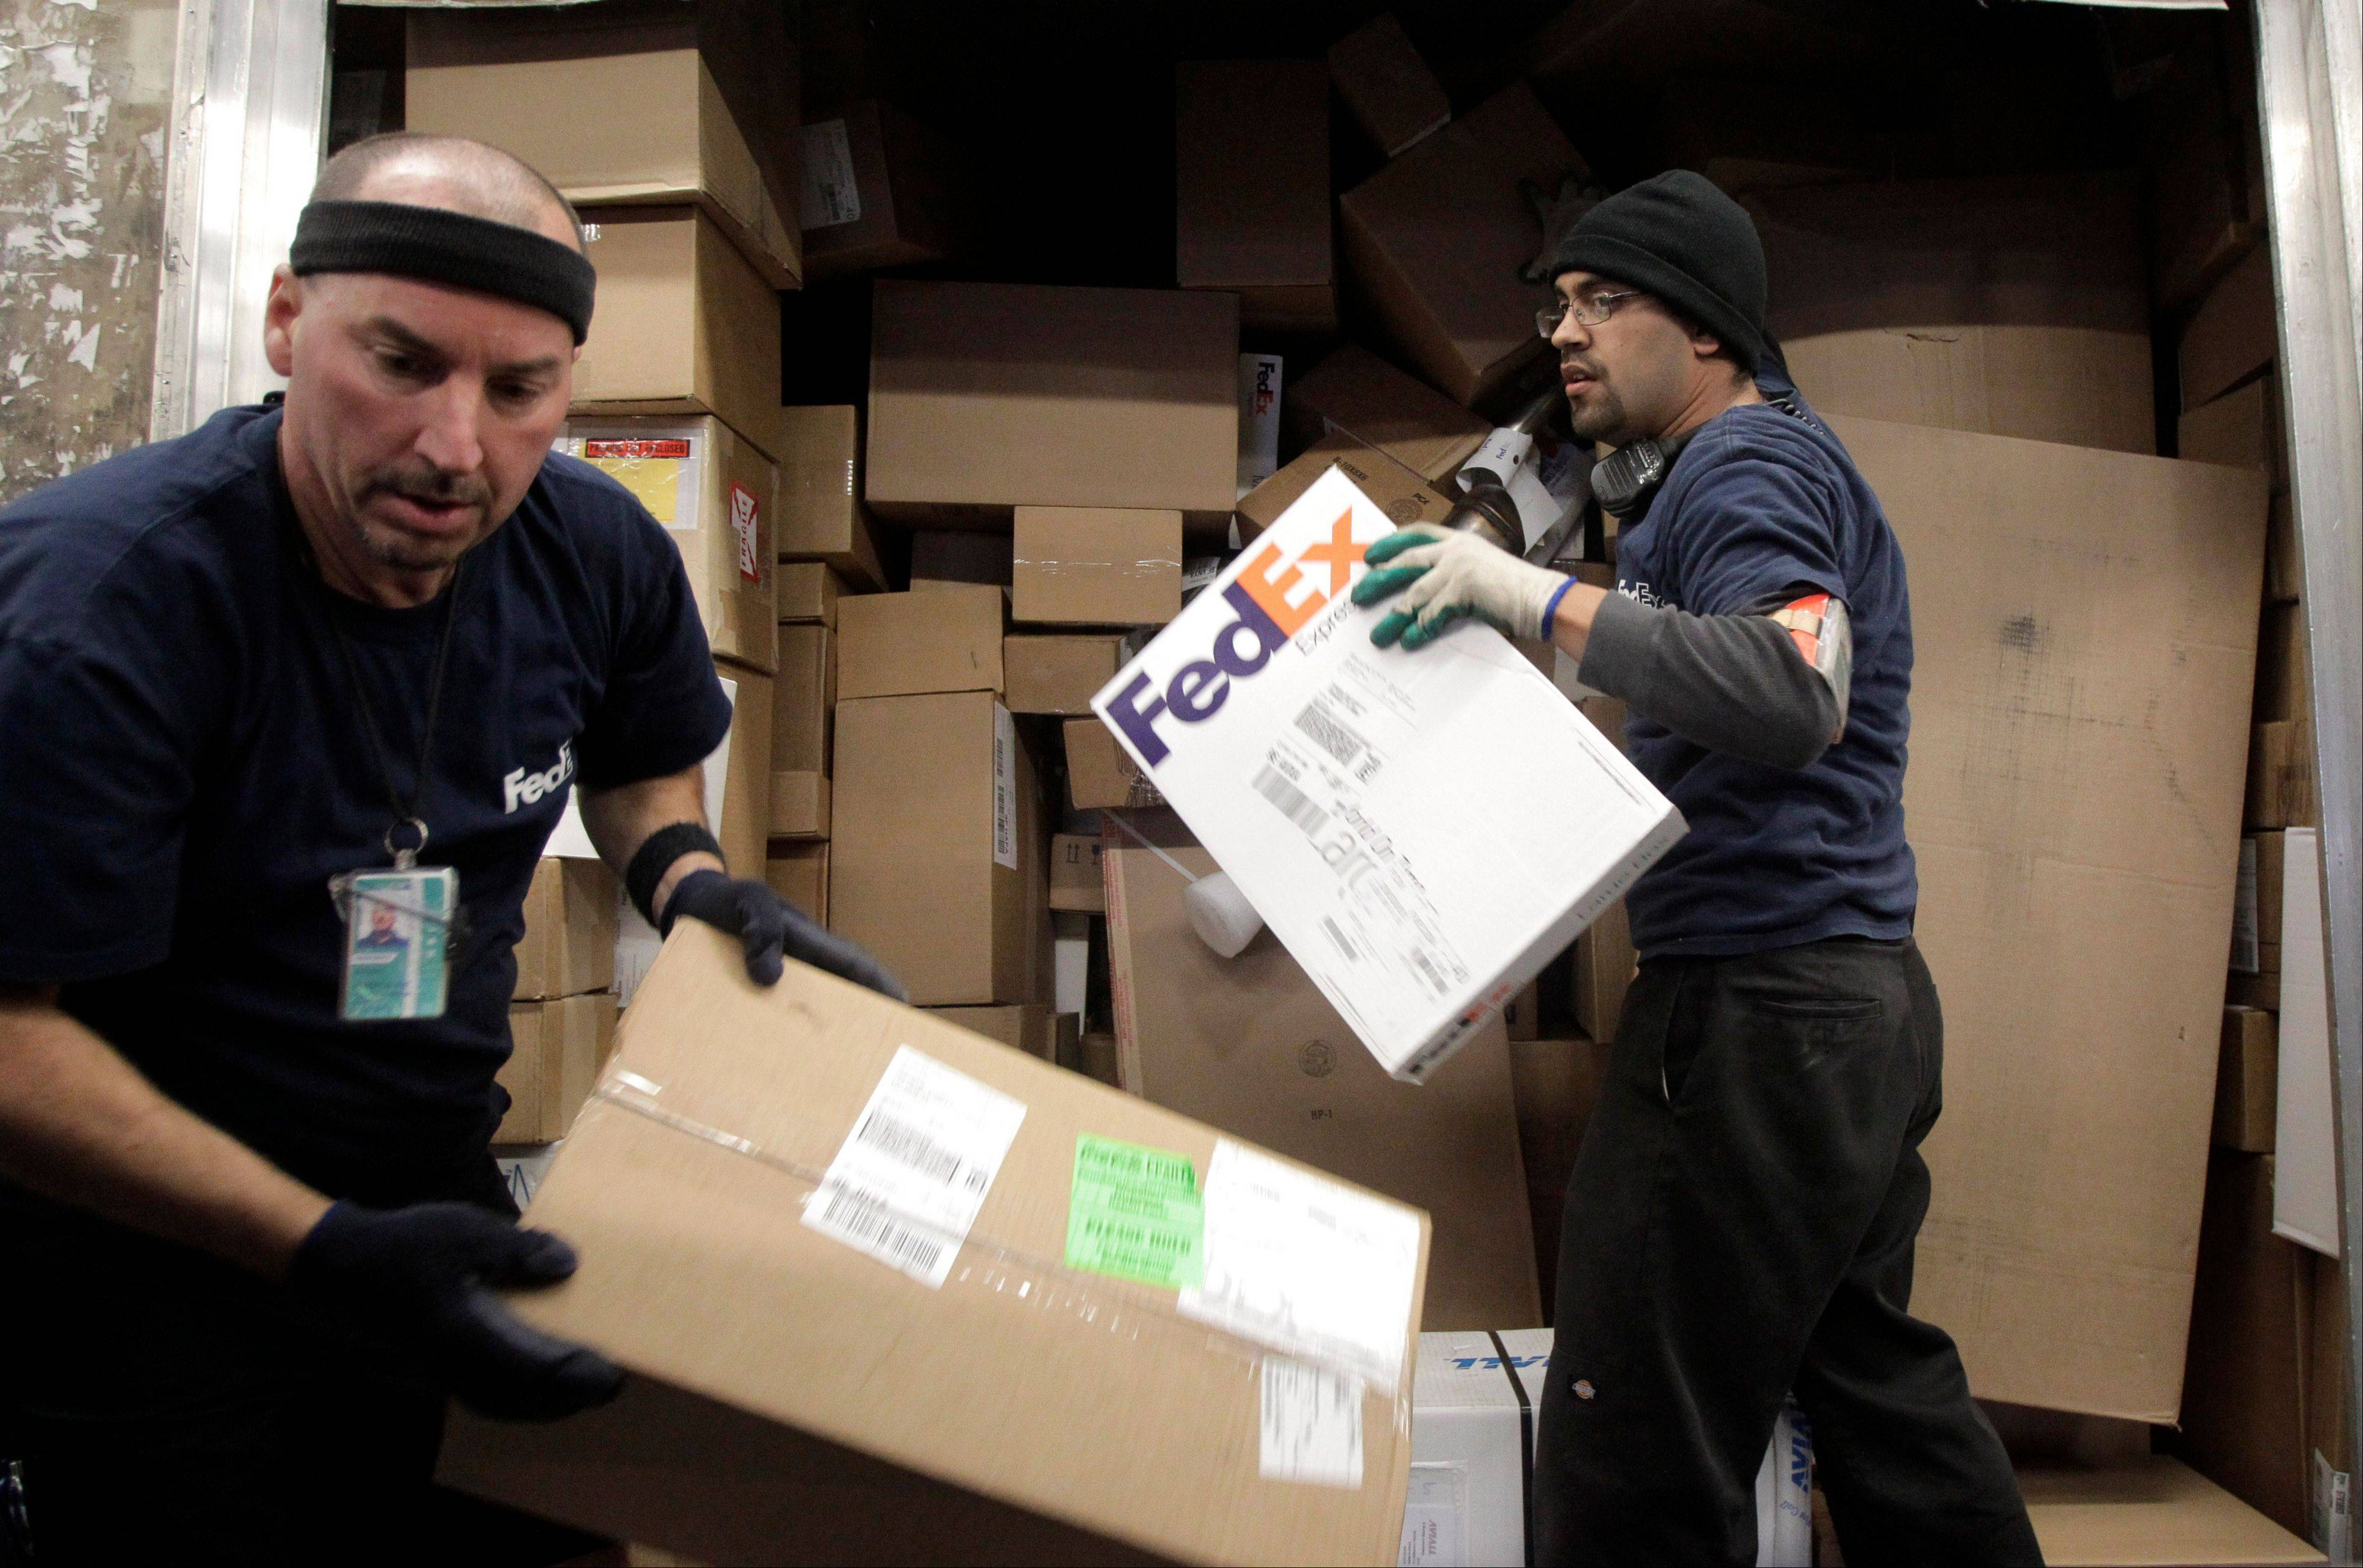 Associated Press/Dec. 13, 2011FedEx workers unload packages at the FedEx hub at Los Angeles International Airport in Los Angeles.